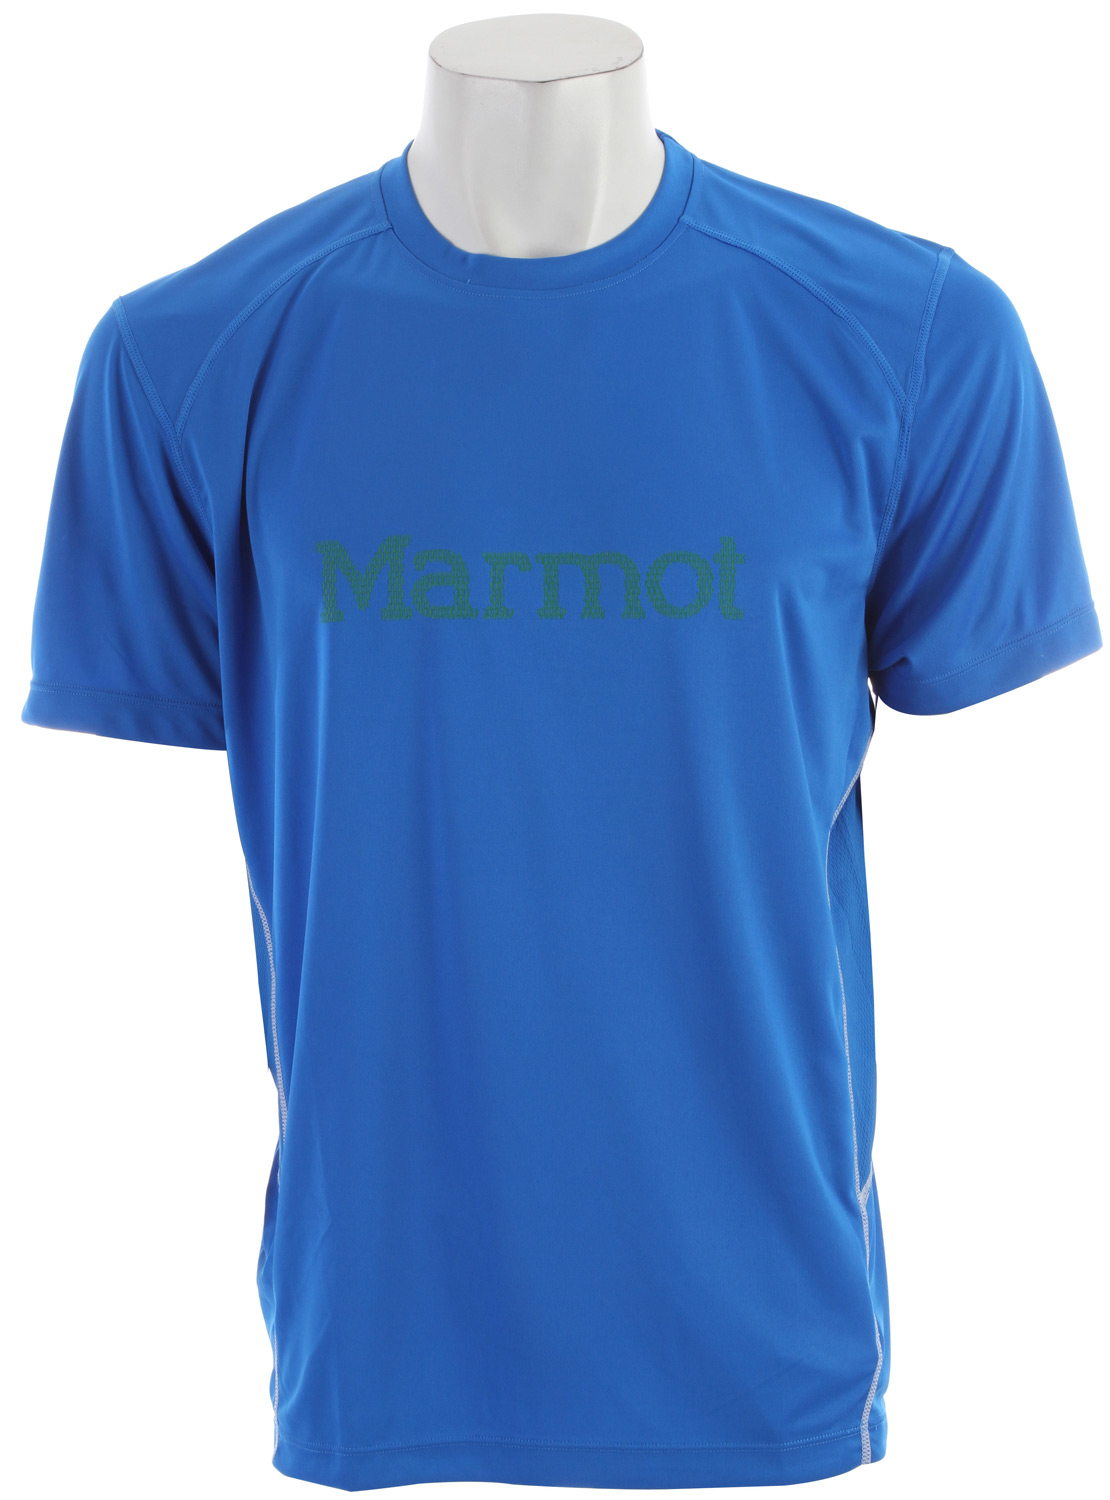 Key Features of the Marmot Windridge w/ Graphic Shirt: Weight 0lbs 13.4oz (379.9g) Materials 100% Polyester Jersey 4.0 oz/yd 100% Polyester Mesh 3.0 oz/yd Fit Semi-Fitted Lightweight, Breathable, Quick-Drying Performance Knit Fabric Ultraviolet Protection Factor (UPF) 50 Quick-Drying and Wicking Mesh Panels for Breathability Contrast Flat- Locked Seams for Added Comfort Center Front Graphic Logo Tag-Free Neckline Reflective Logos - $34.95